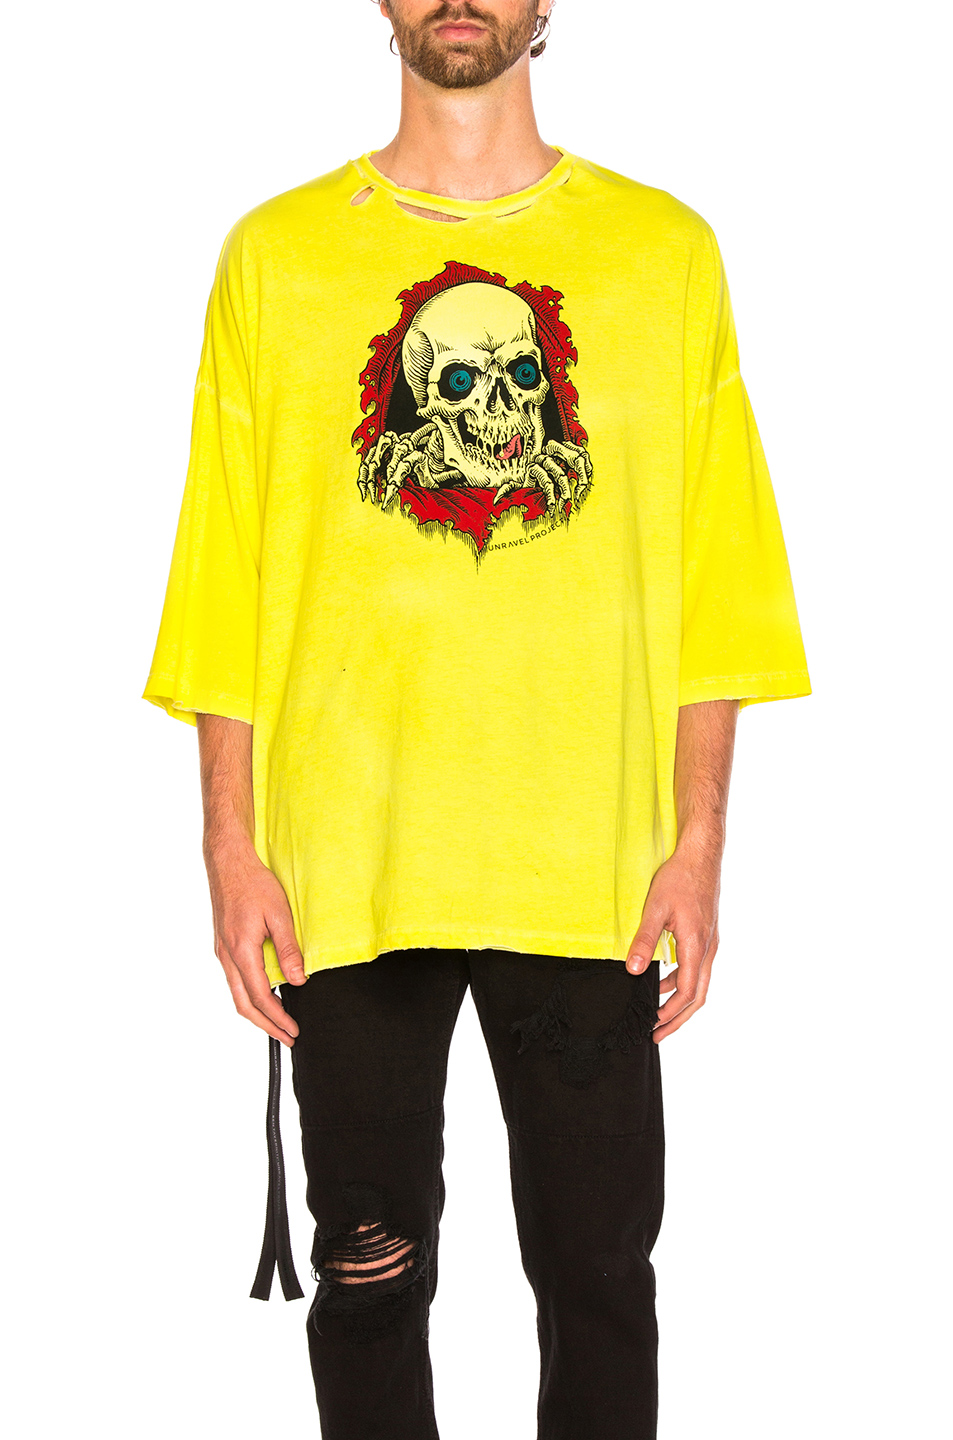 Unravel for FWRD Oversized Boxy Tee in Yellow,Neon